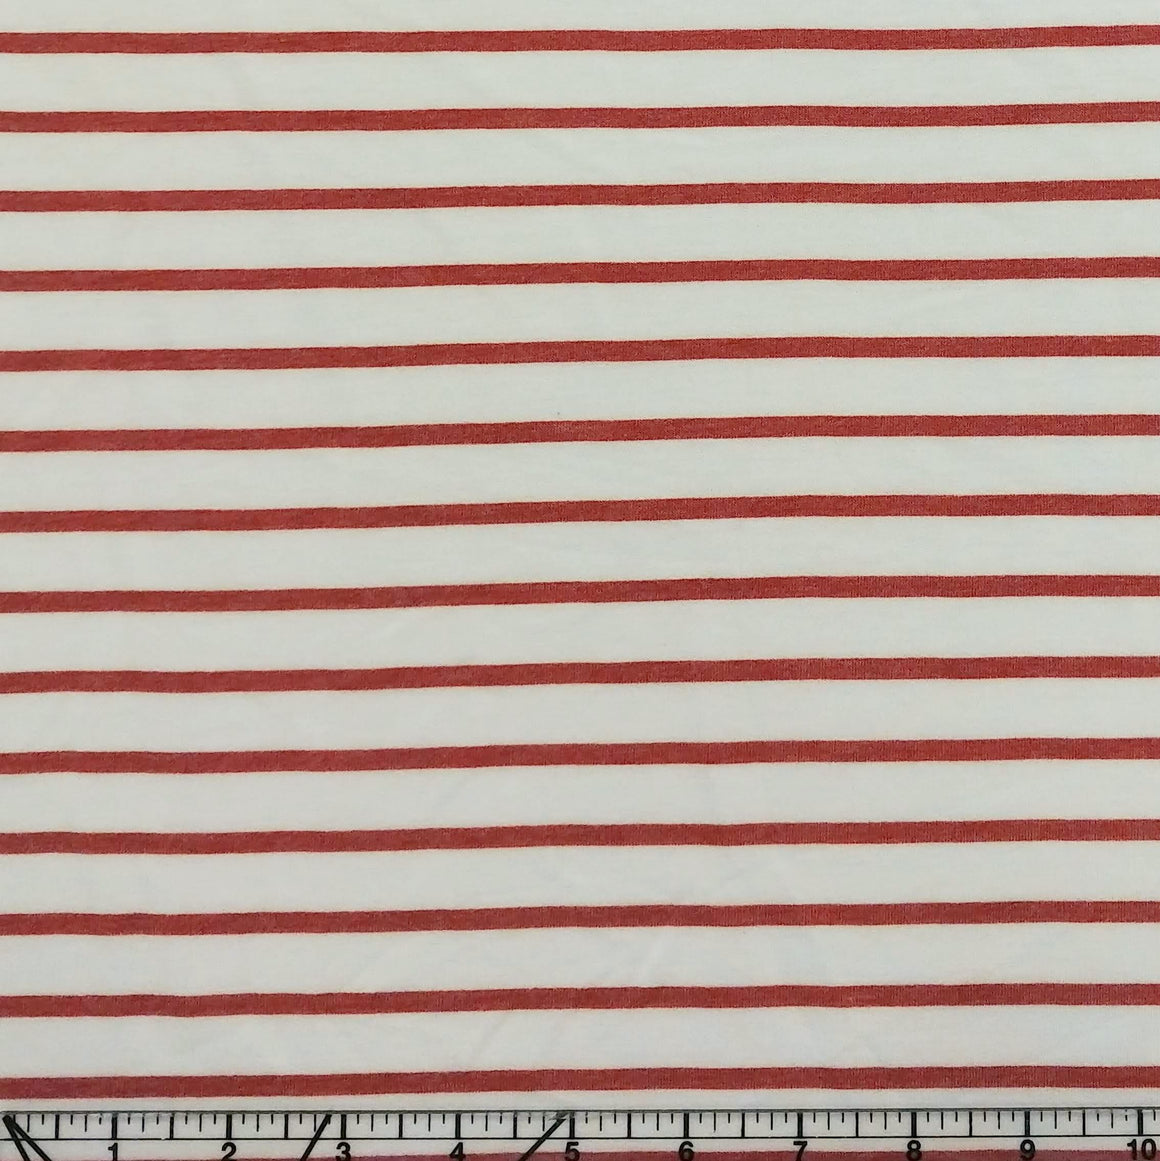 Off White and Rust Red Stripe French Terry Knit Fabric, 1 Yard - Raspberry Creek Fabrics